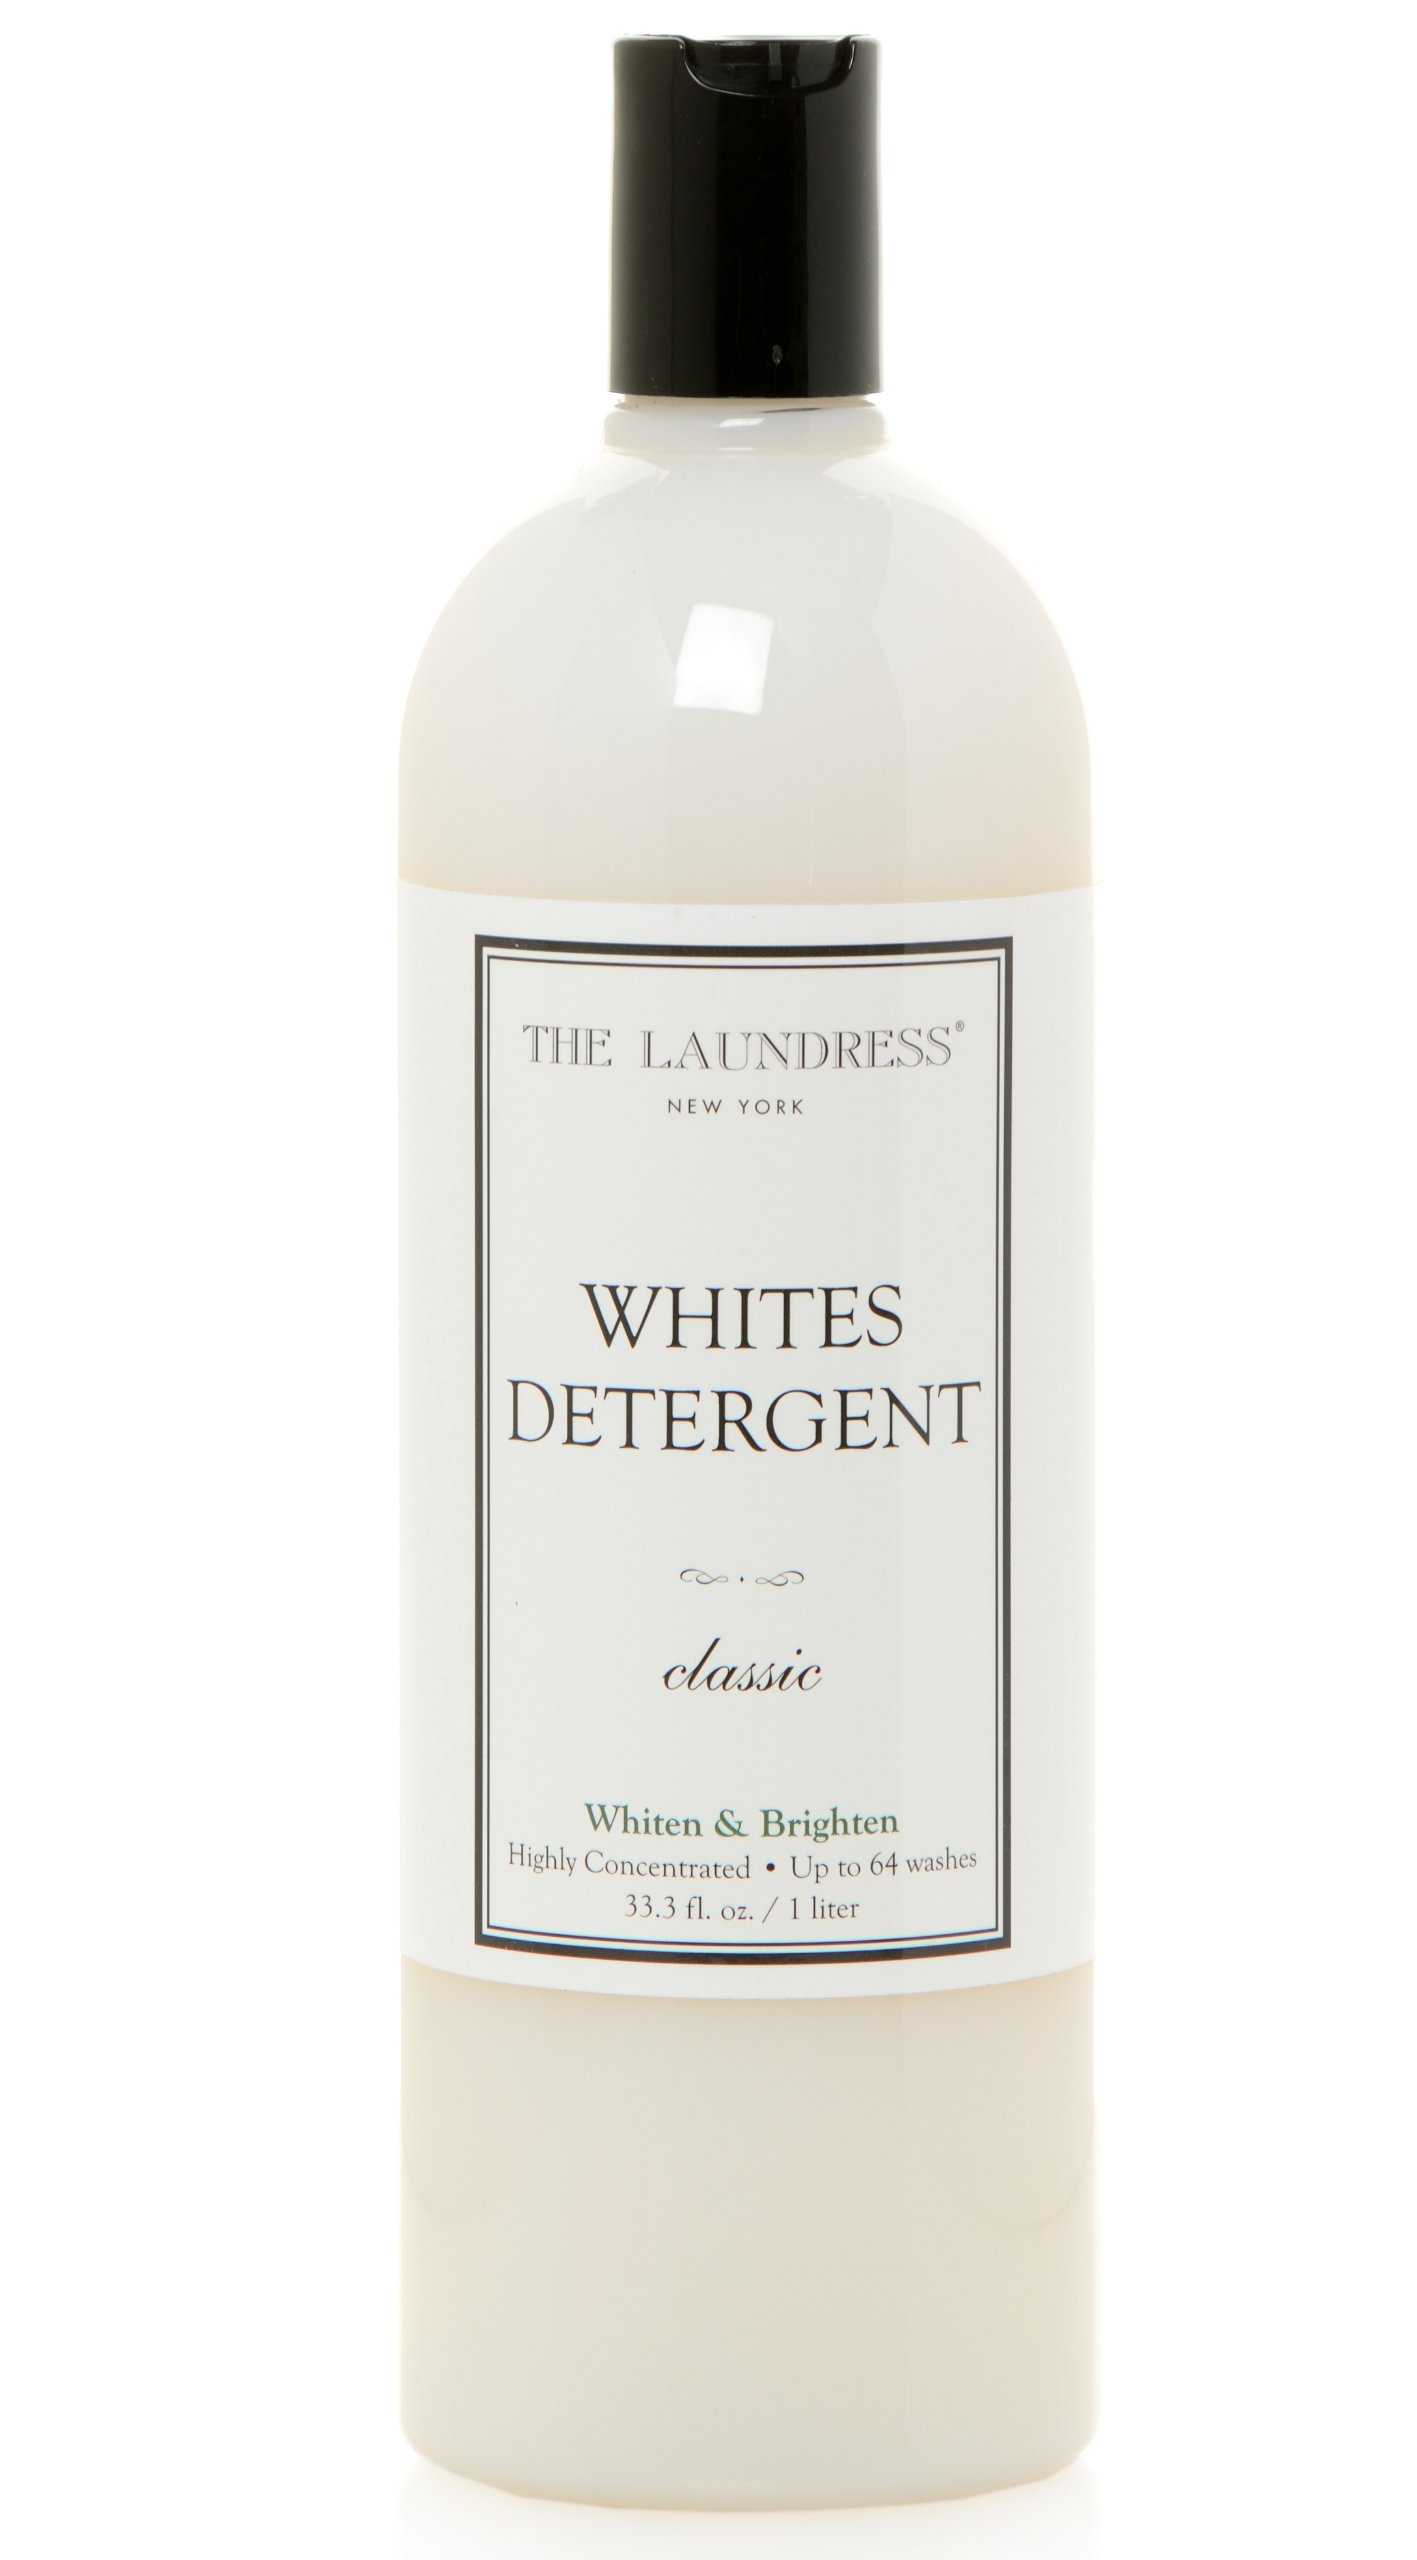 The Laundress - Whites Detergent, Classic, Whitens & Brightens, Fights Stains & Yellowing, 33.3 fl oz, 64 washes